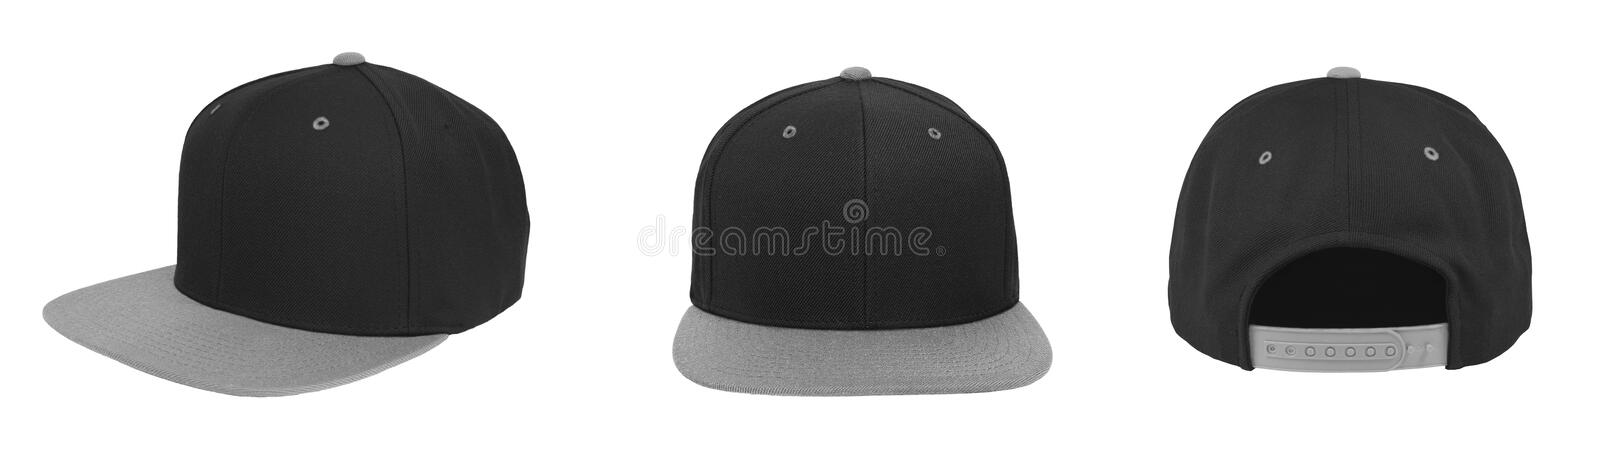 Blank baseball snapback cap two tone color black/gray. On white background royalty free stock photos